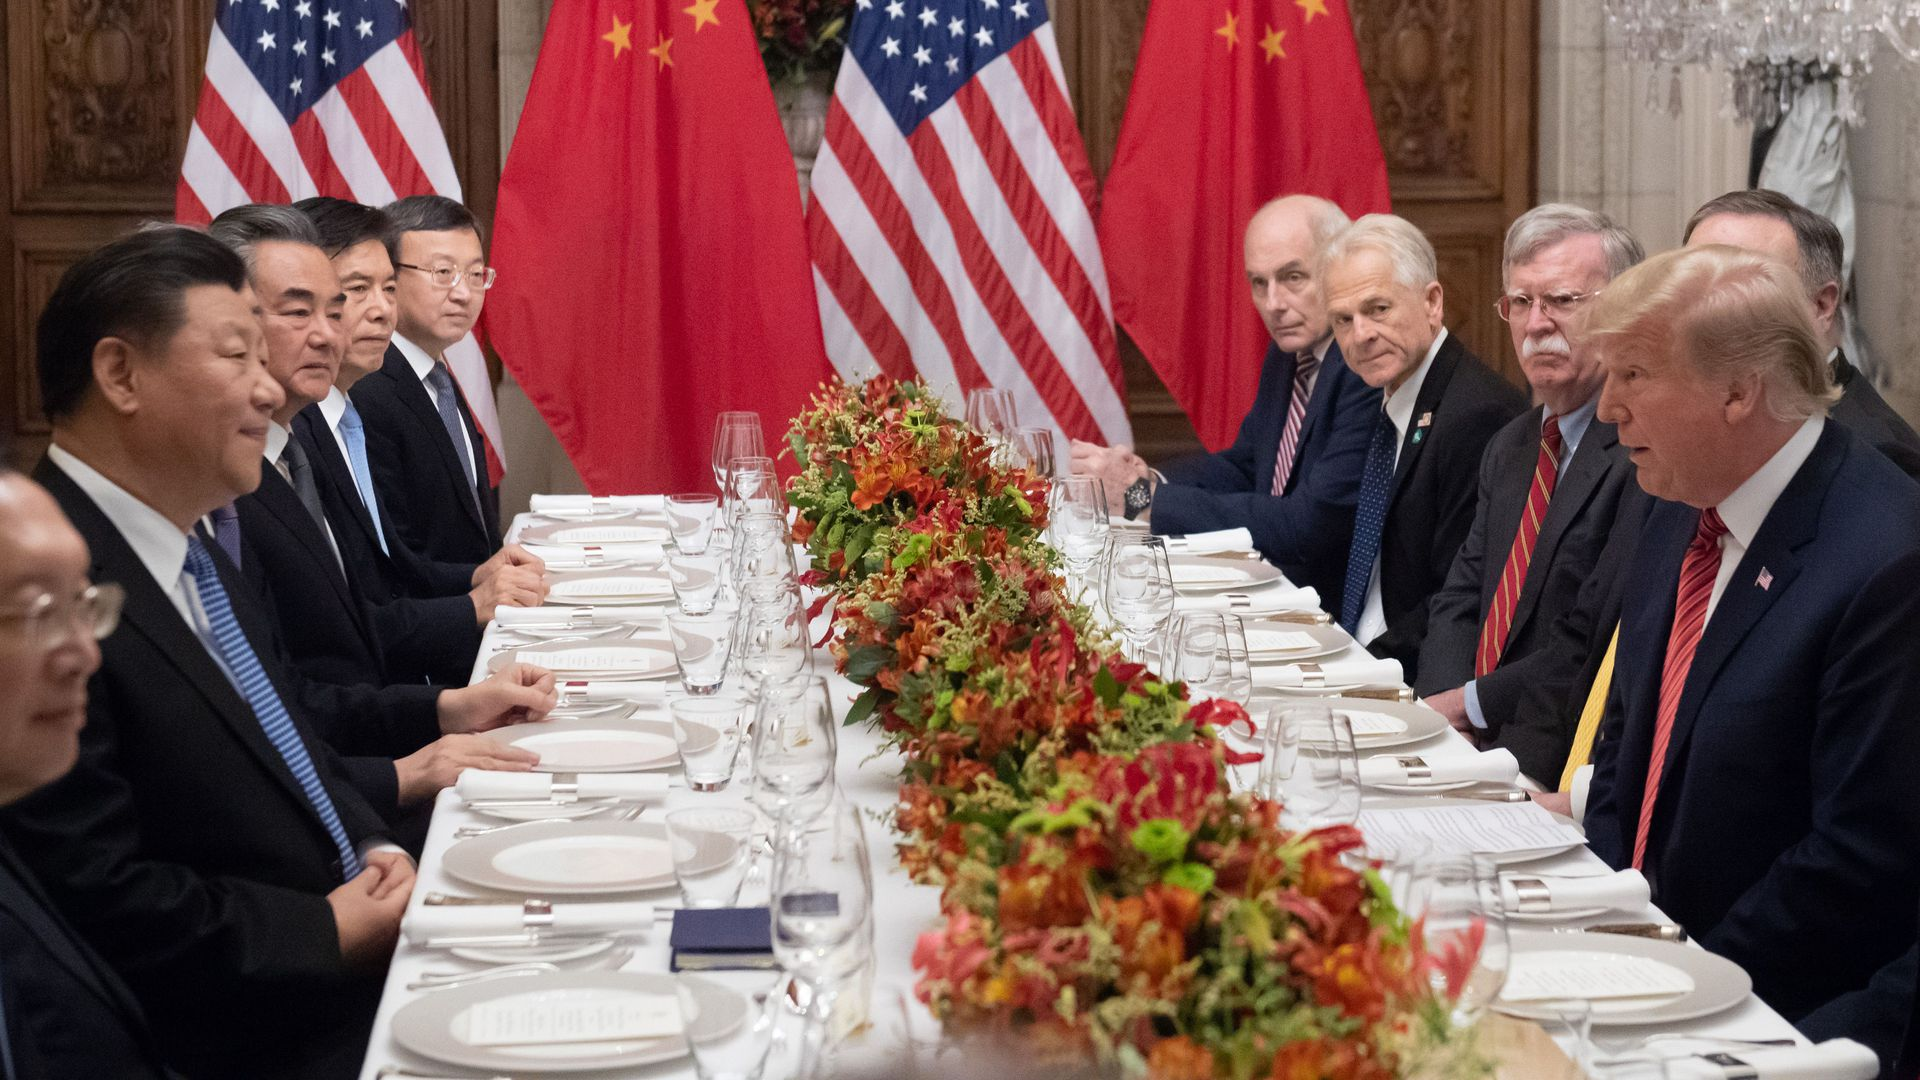 President Donald Trump and Chinese President Xi Jinping hold a dinner meeting at the end of the G20.